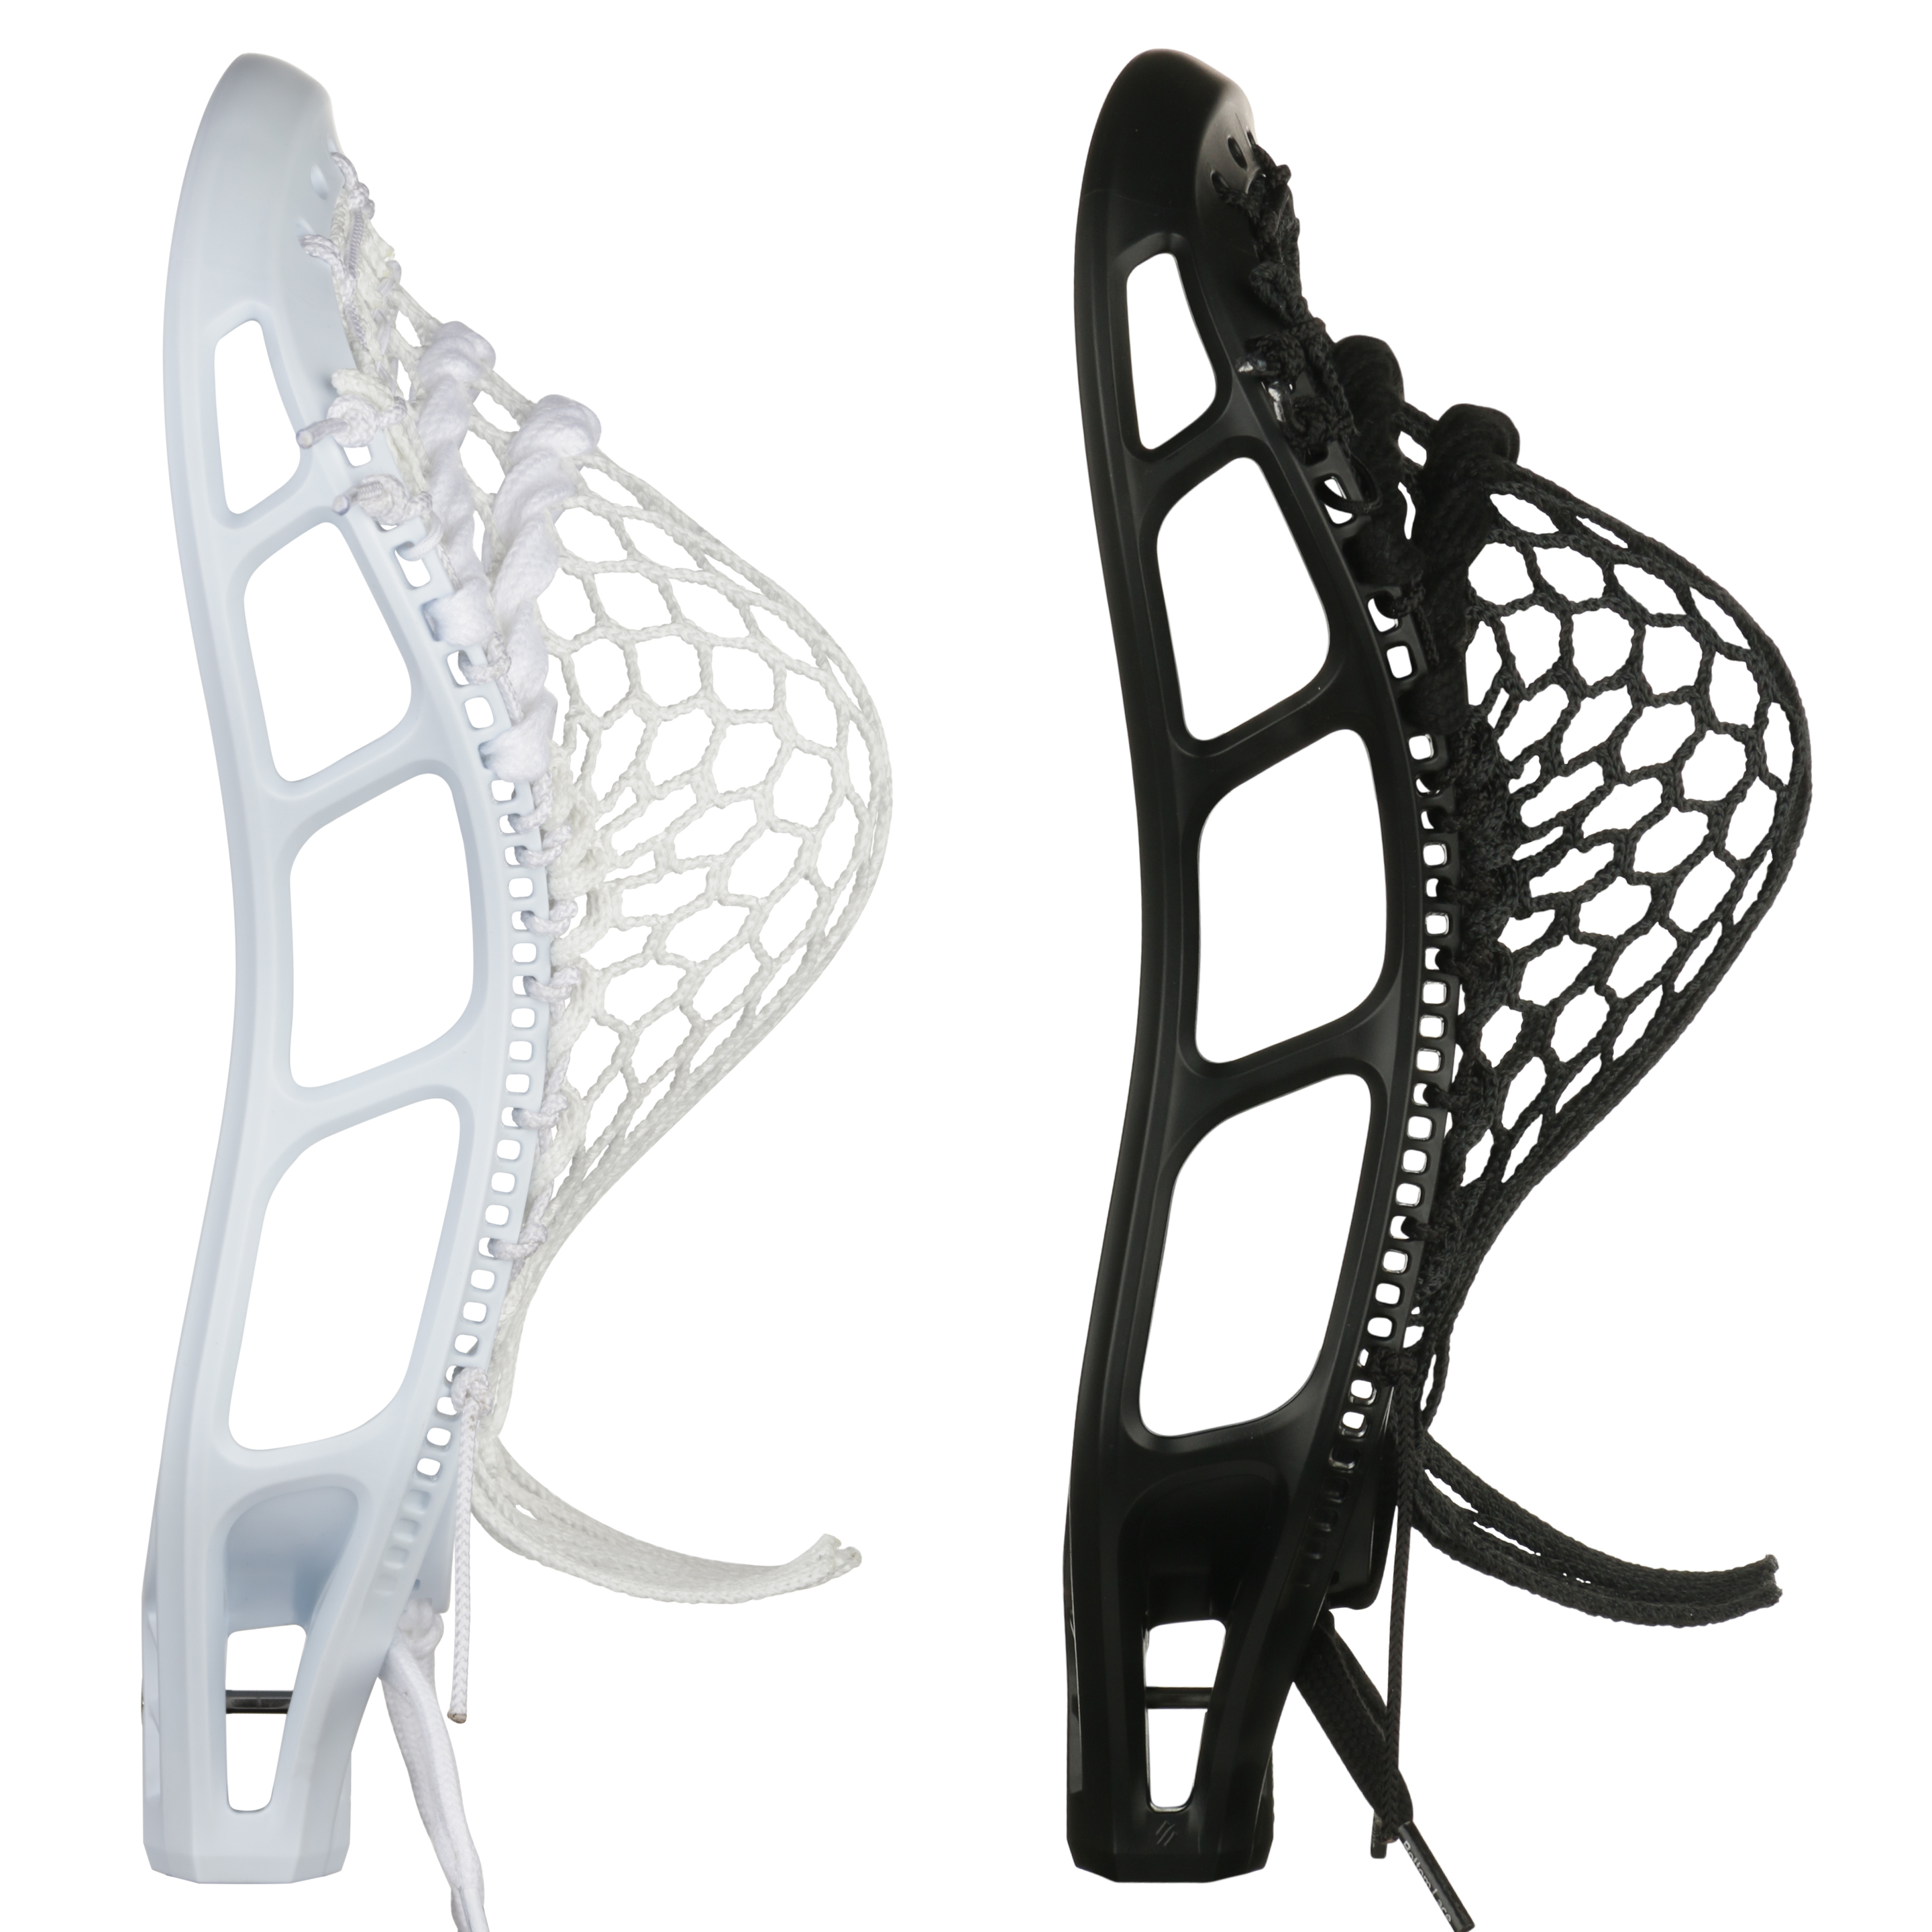 StringKing Mark 2D Defense Lacrosse Head Strung Pocket Black White